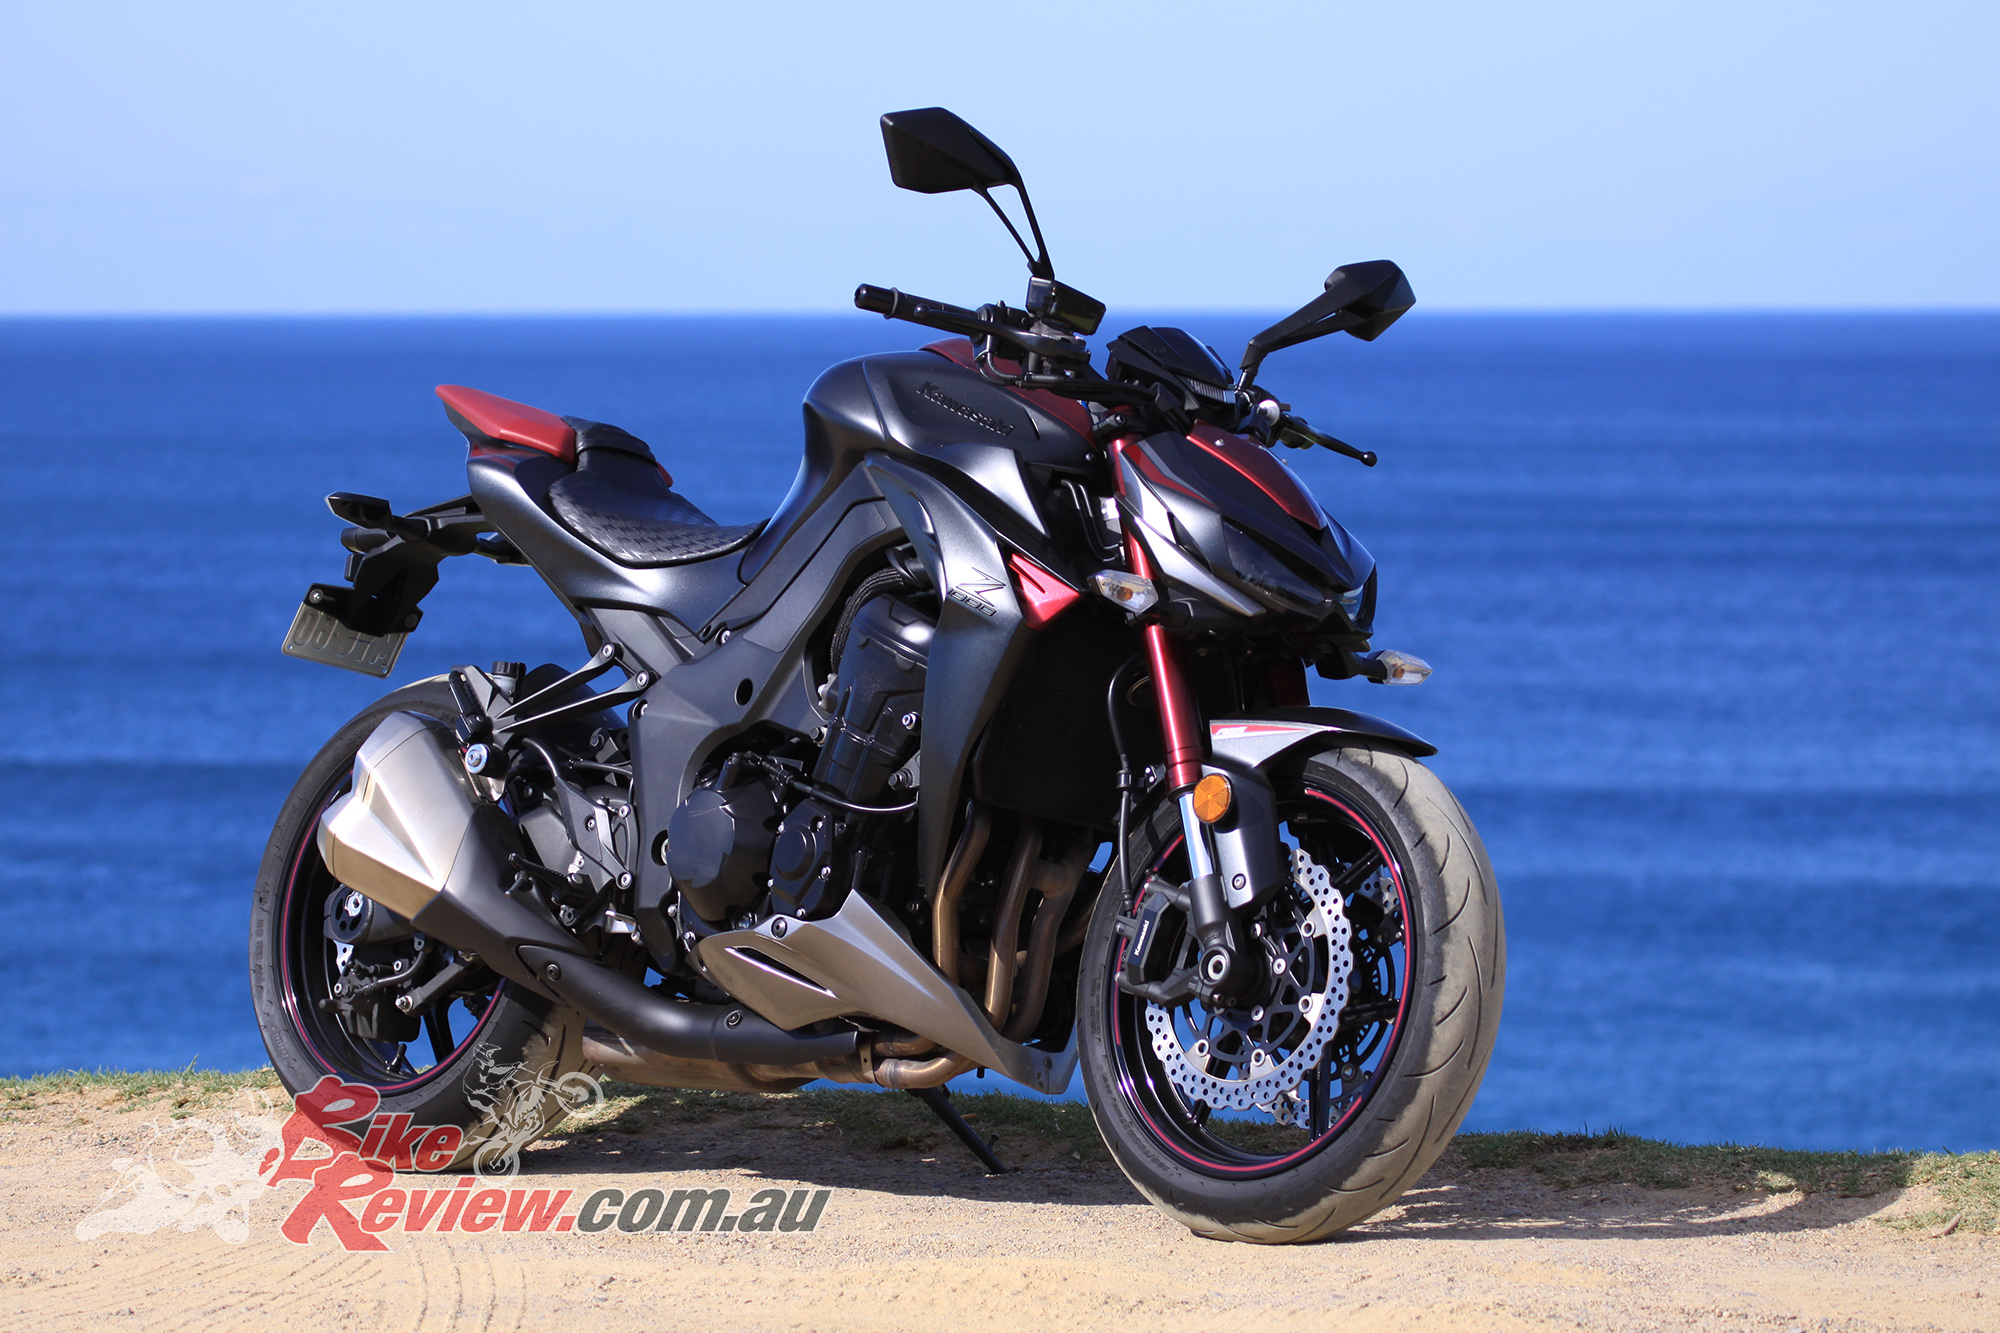 Review 2016 Kawasaki Z1000